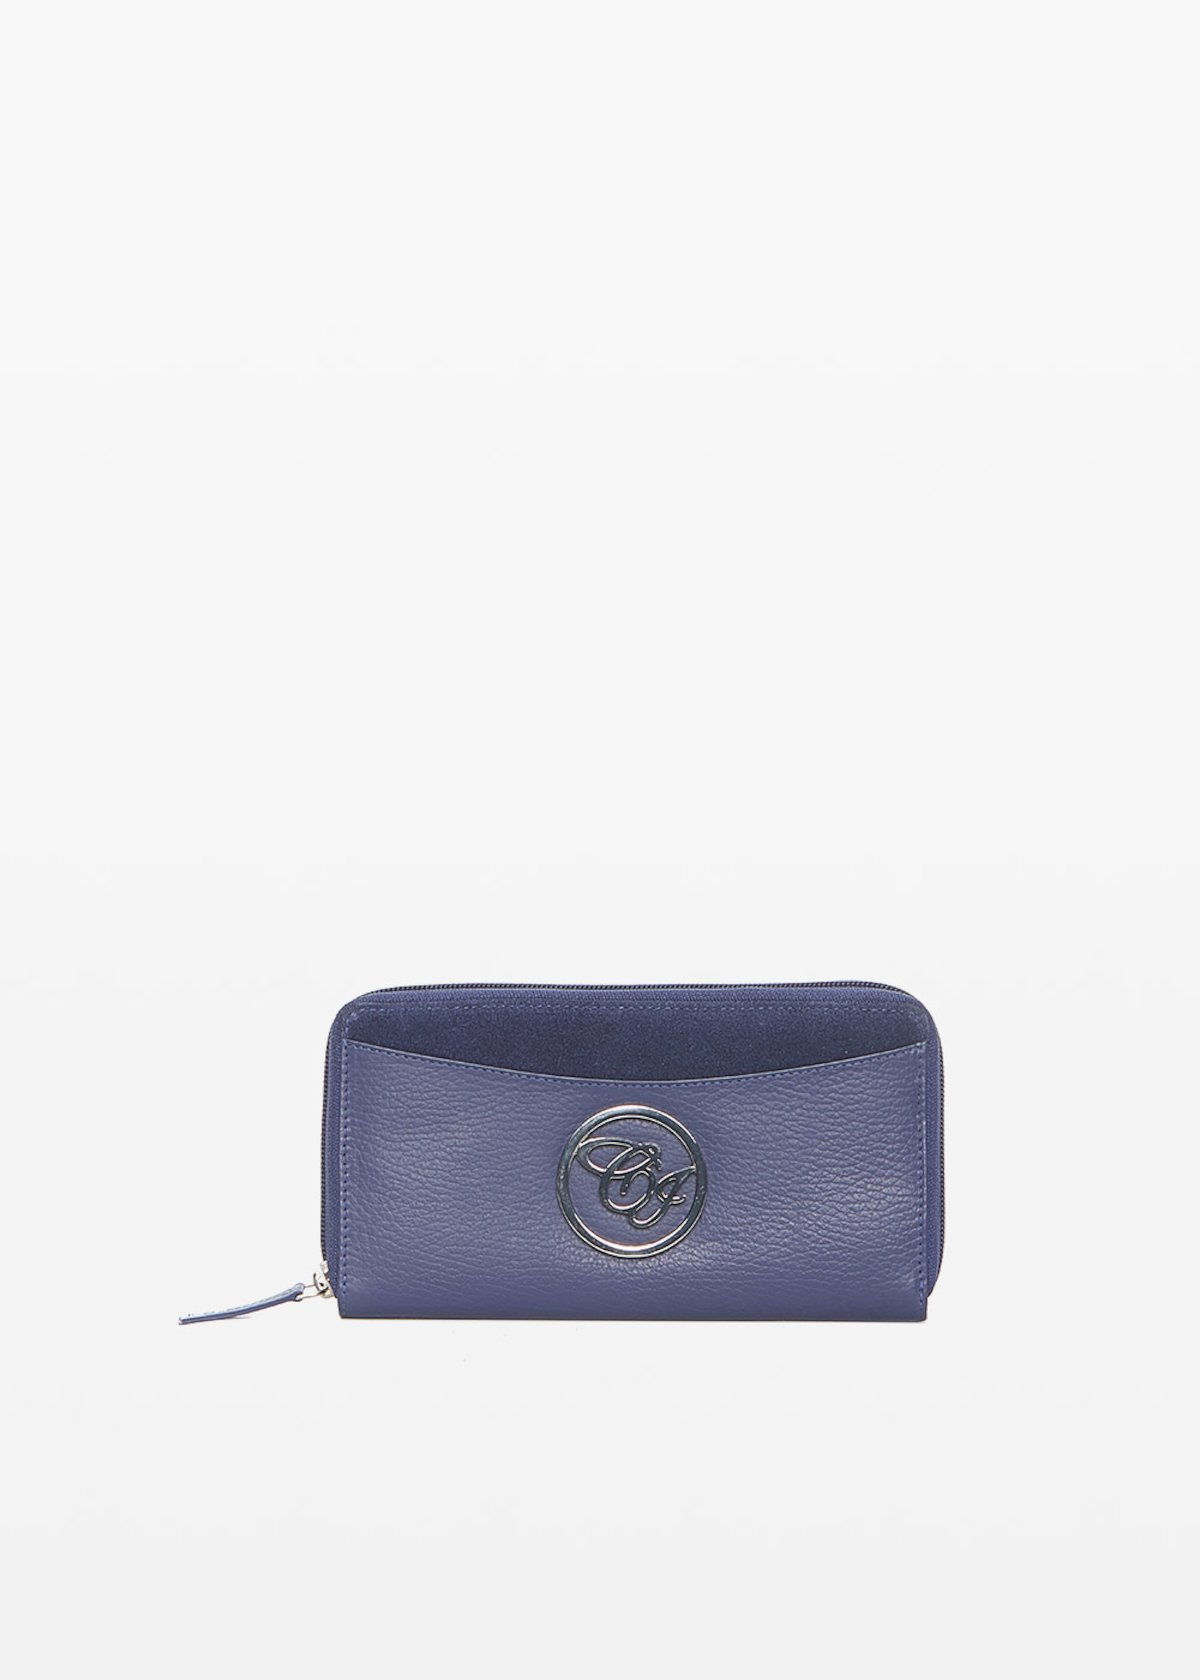 Leather and suede Peony wallet - Medium Blue - Woman - Category image